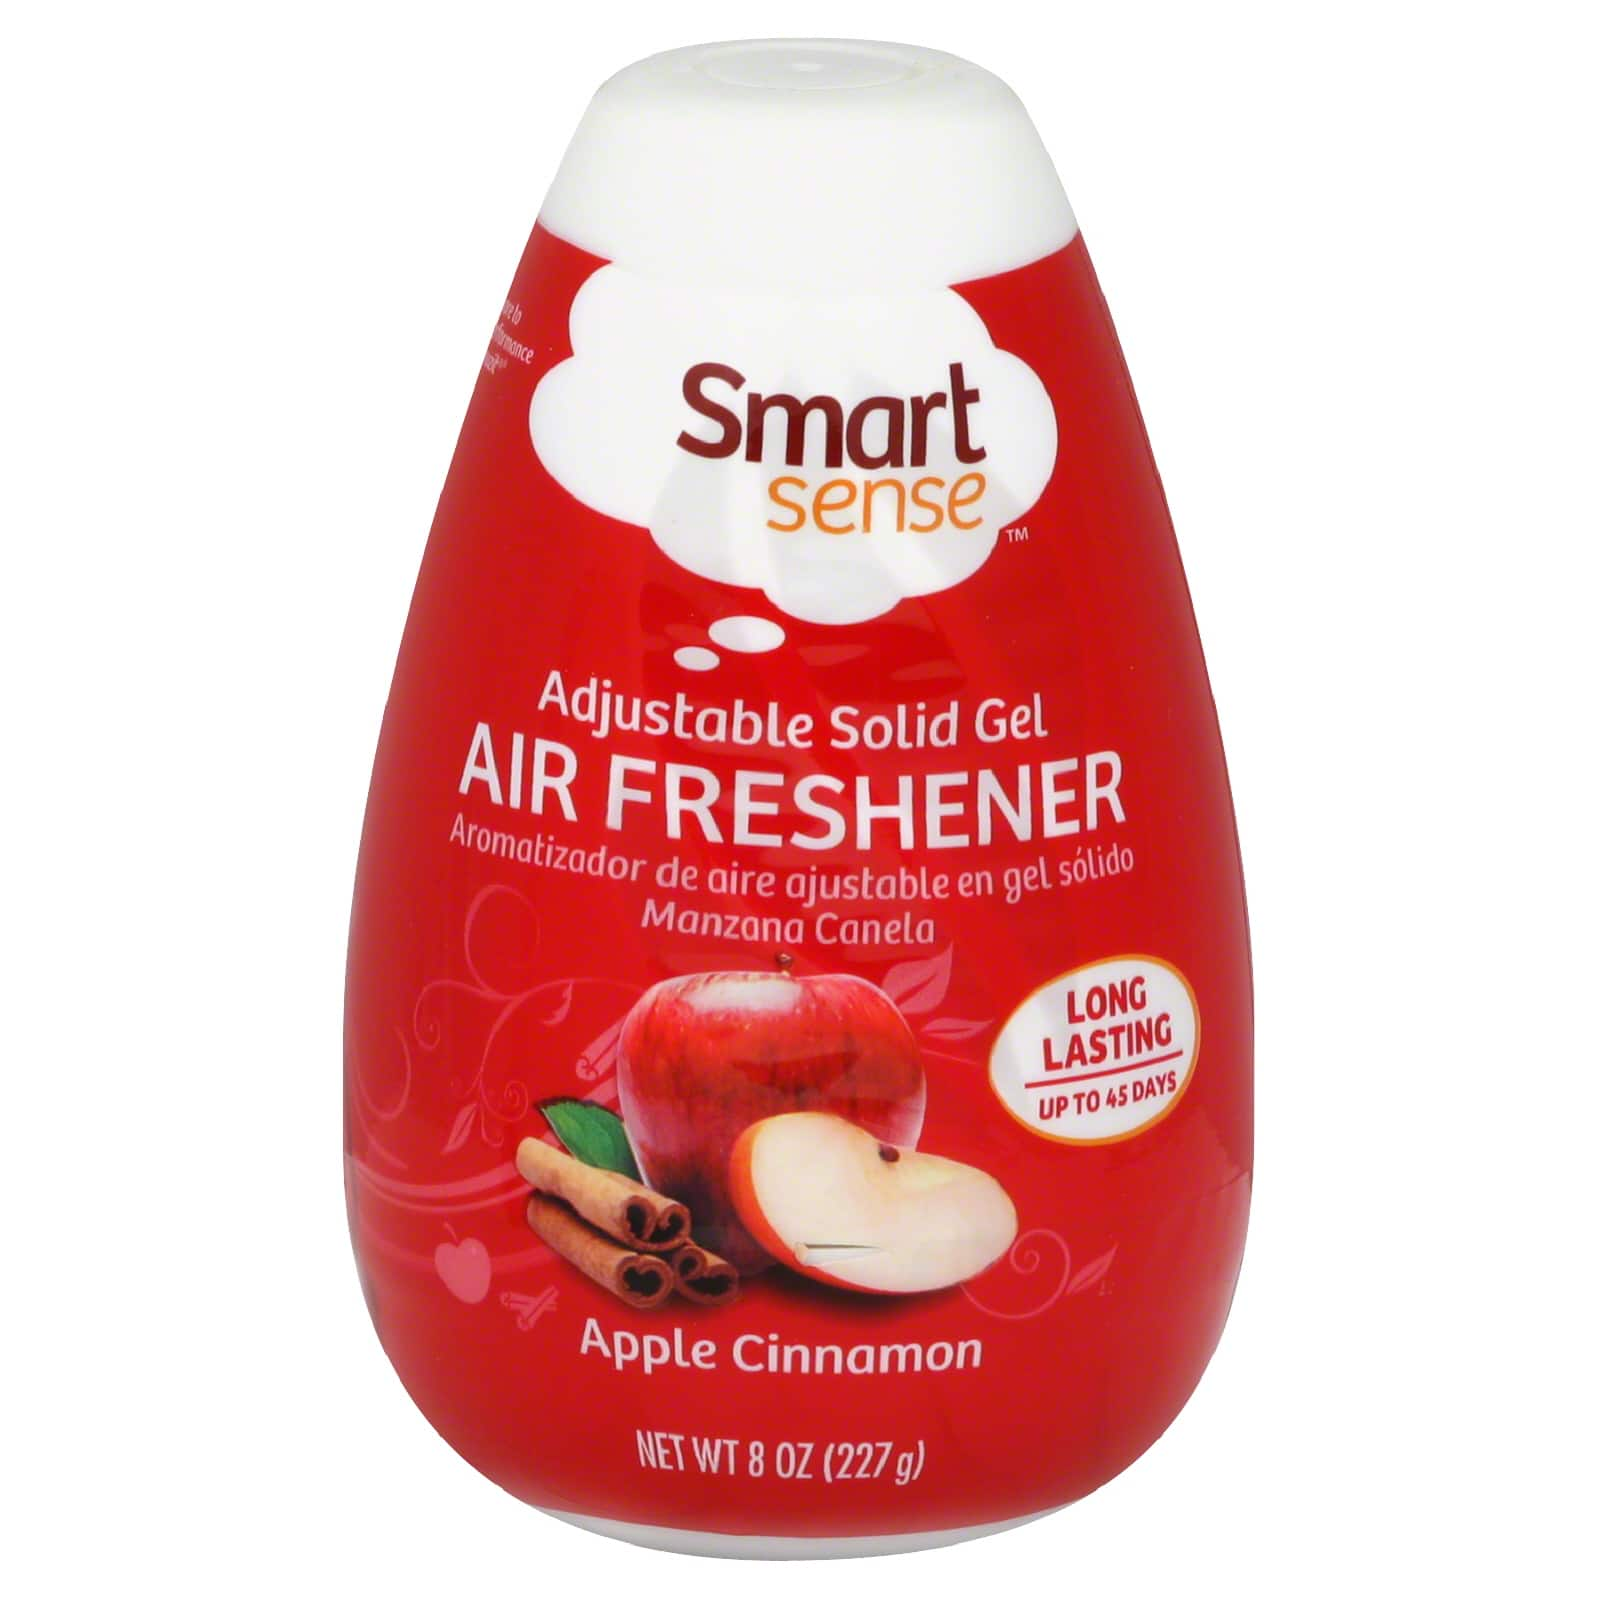 Free Smart Sense Air Freshener (Assorted Varieties) After Coupon @ Kmart B&M via iOS or Android App - Must Be Loaded on Friday, 06/24/16 Only